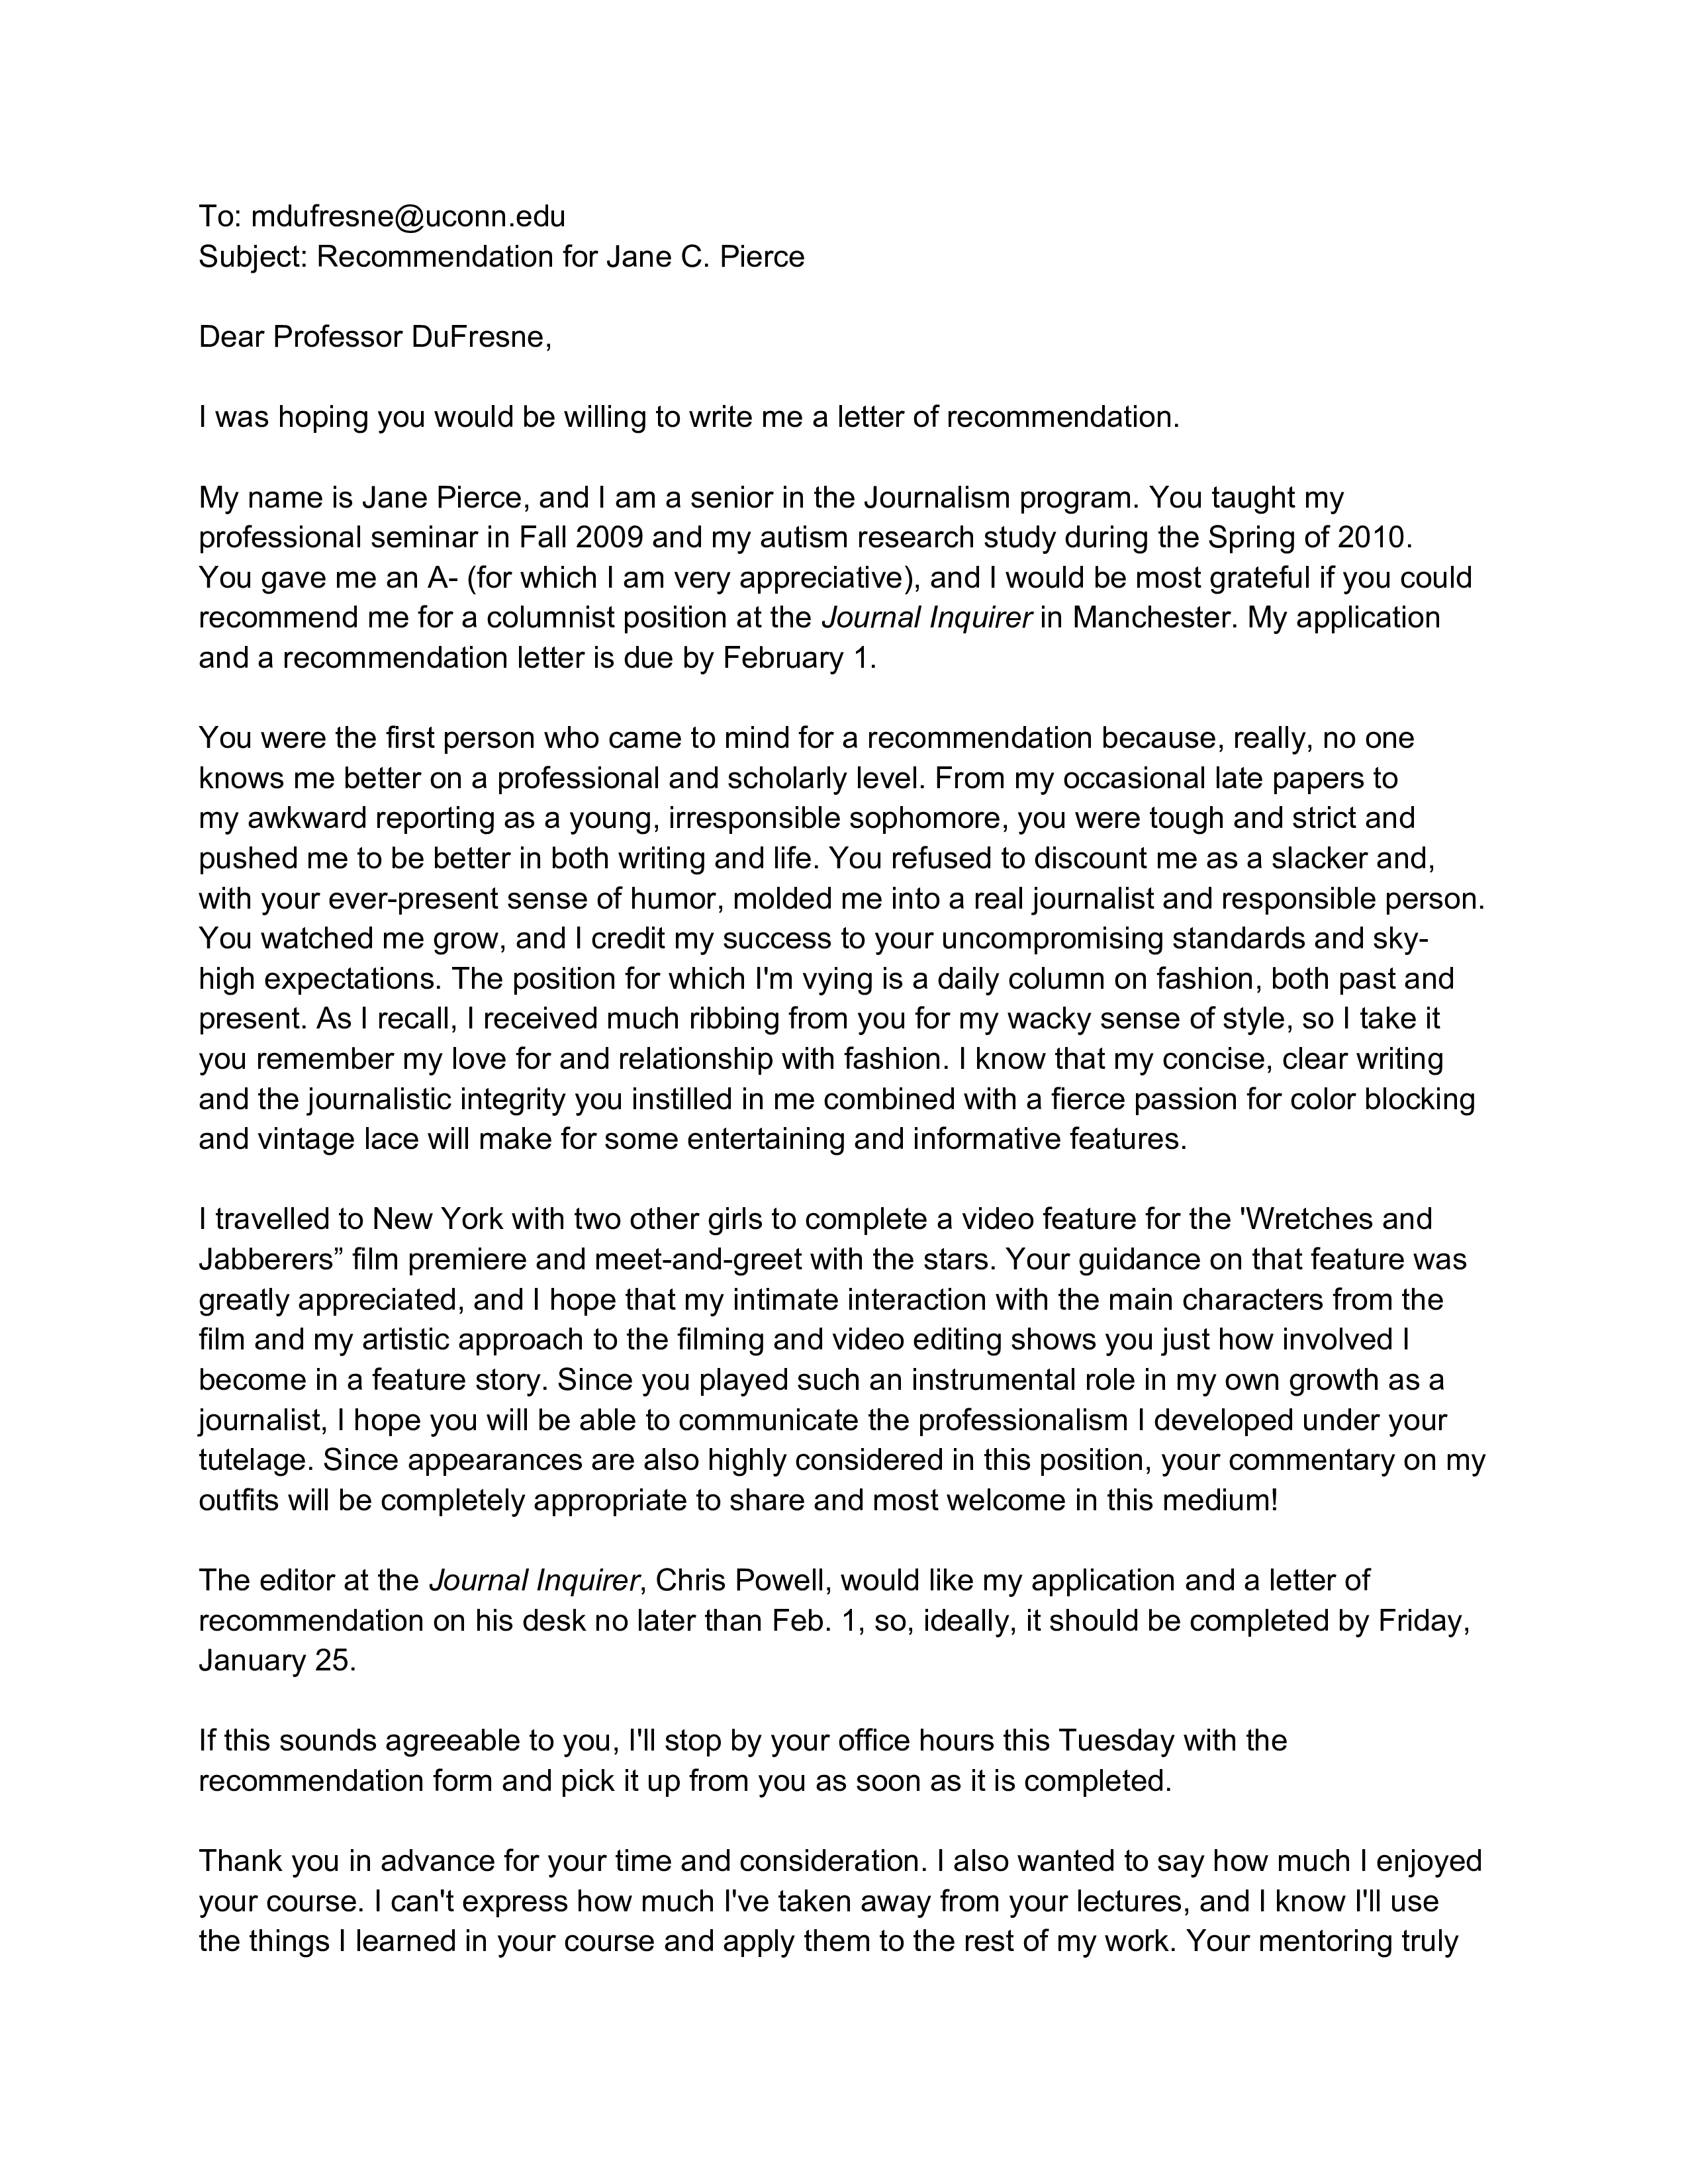 Free recommendation letter request for professor templates at recommendation letter request for professor main image spiritdancerdesigns Choice Image